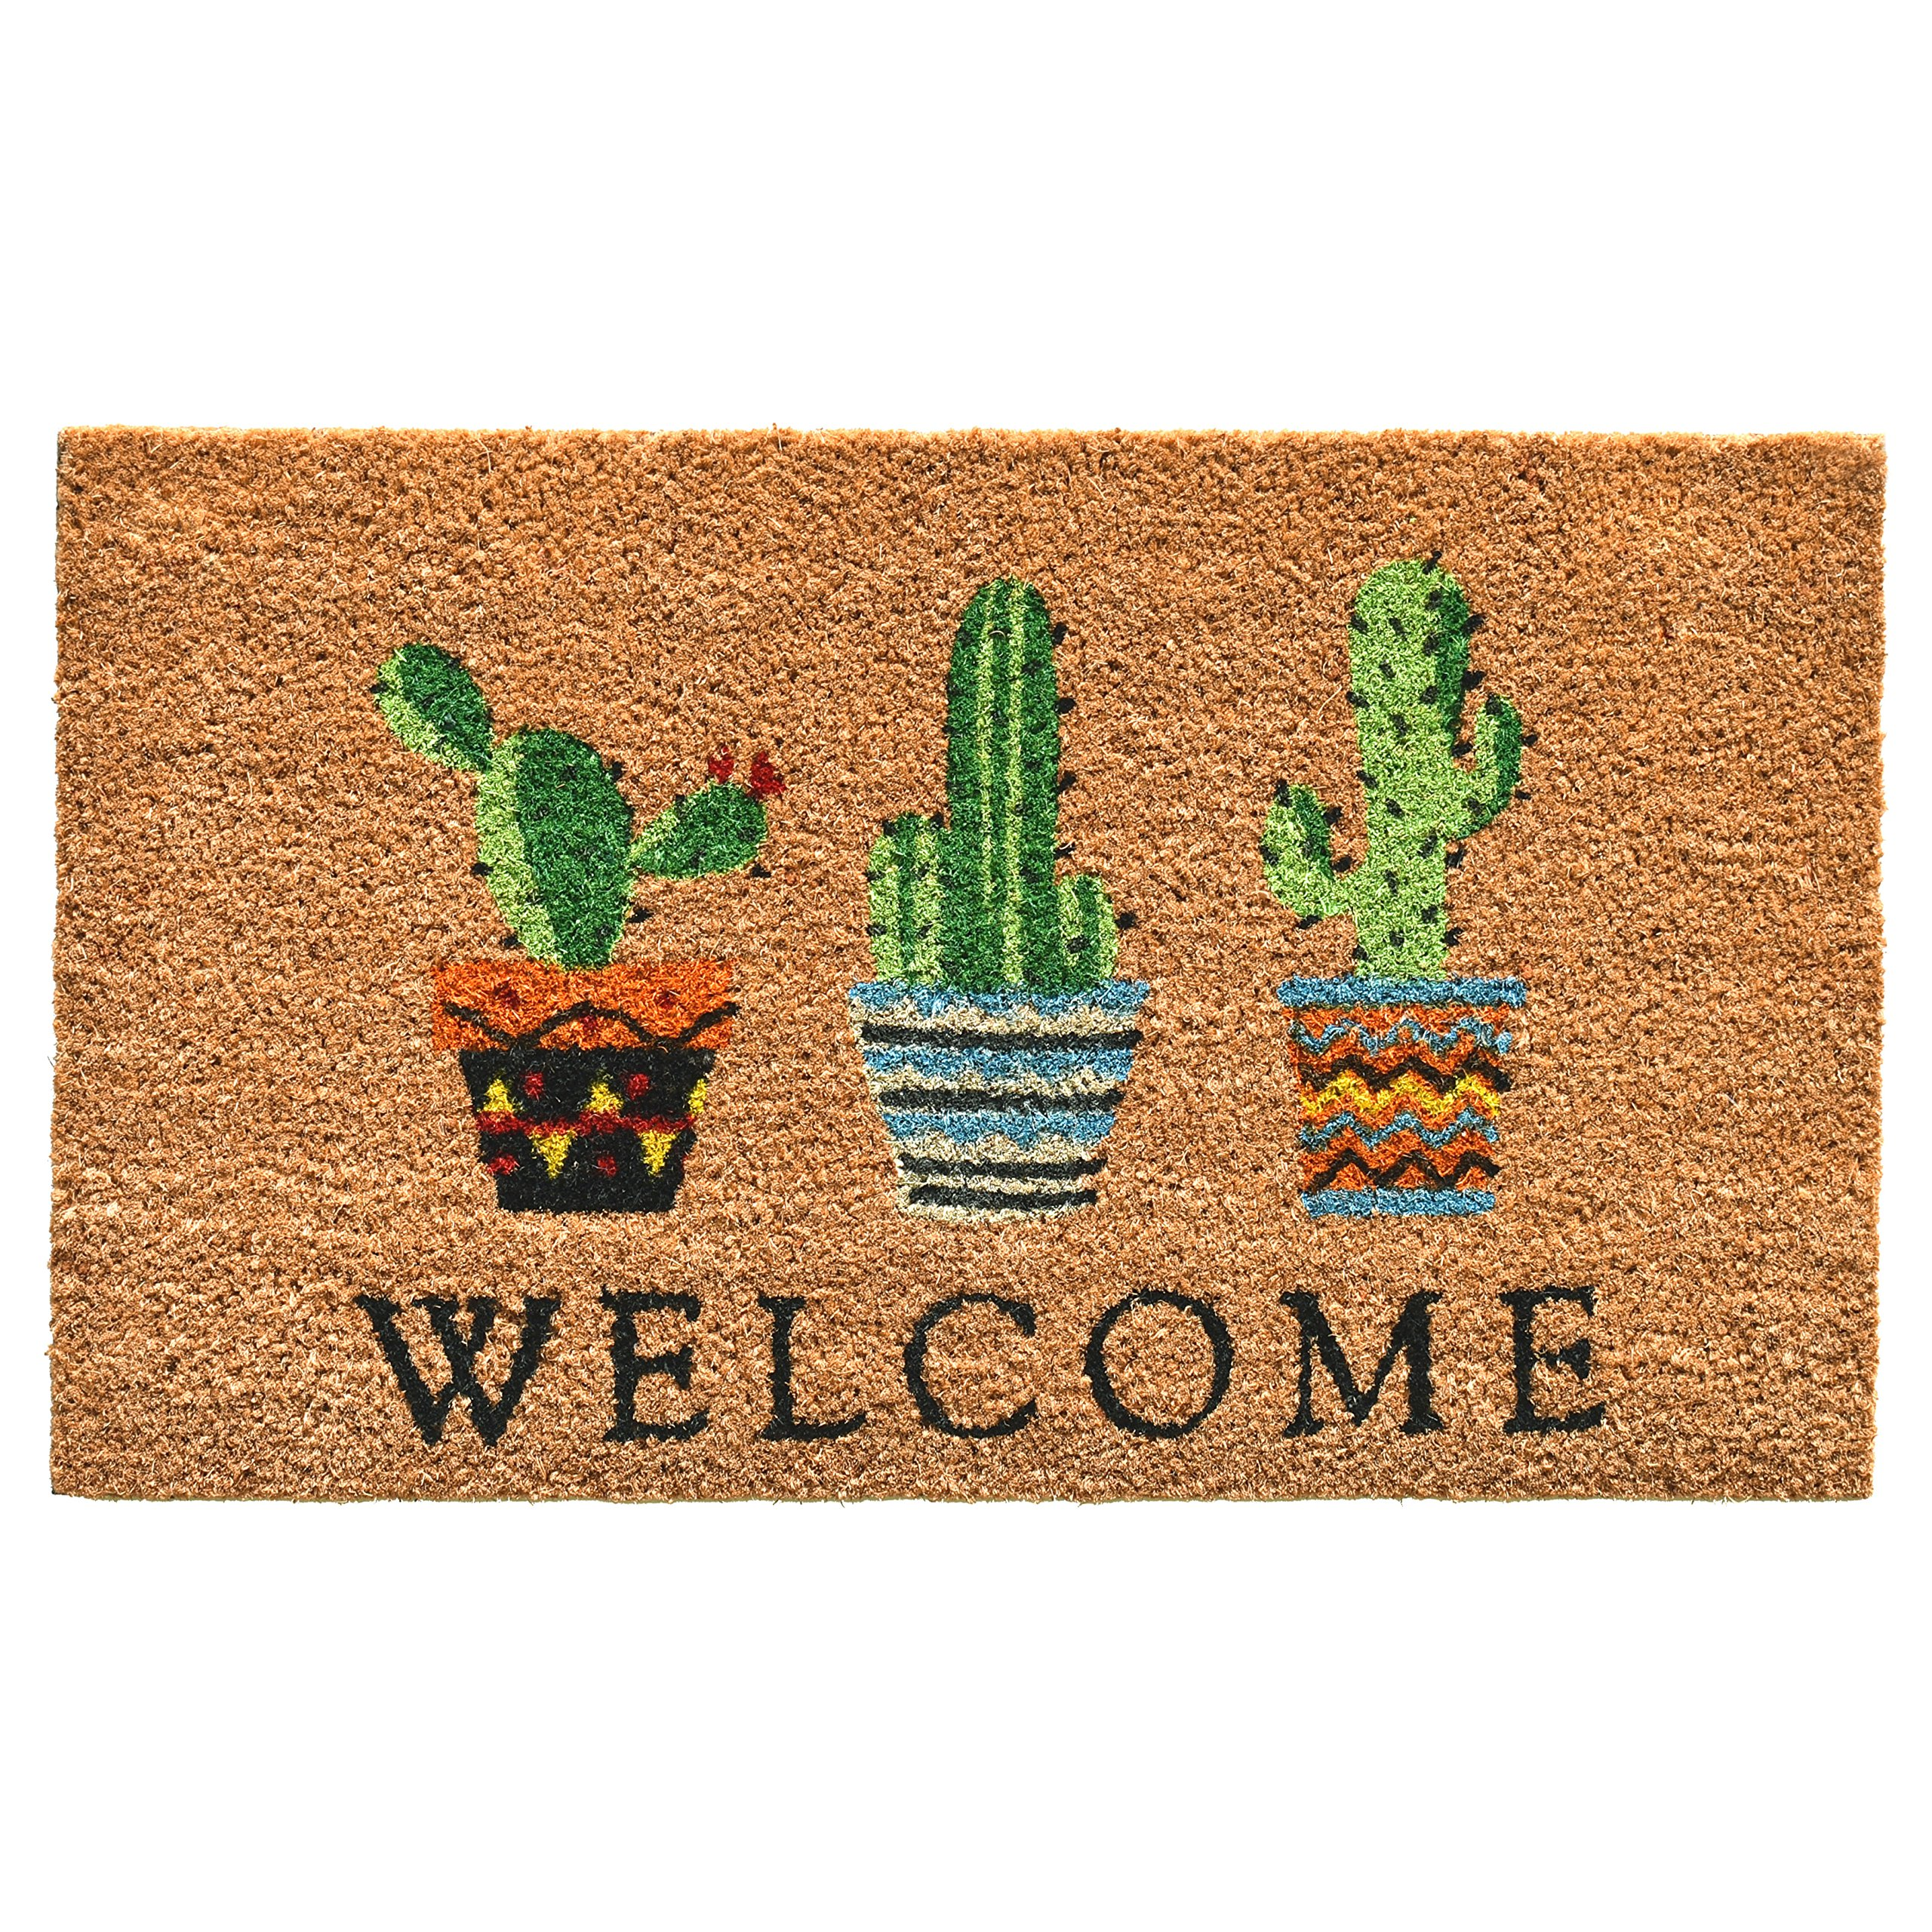 Home & More 104051729 Cactus Welcome Doormat, 17'' x 29'', Multicolor